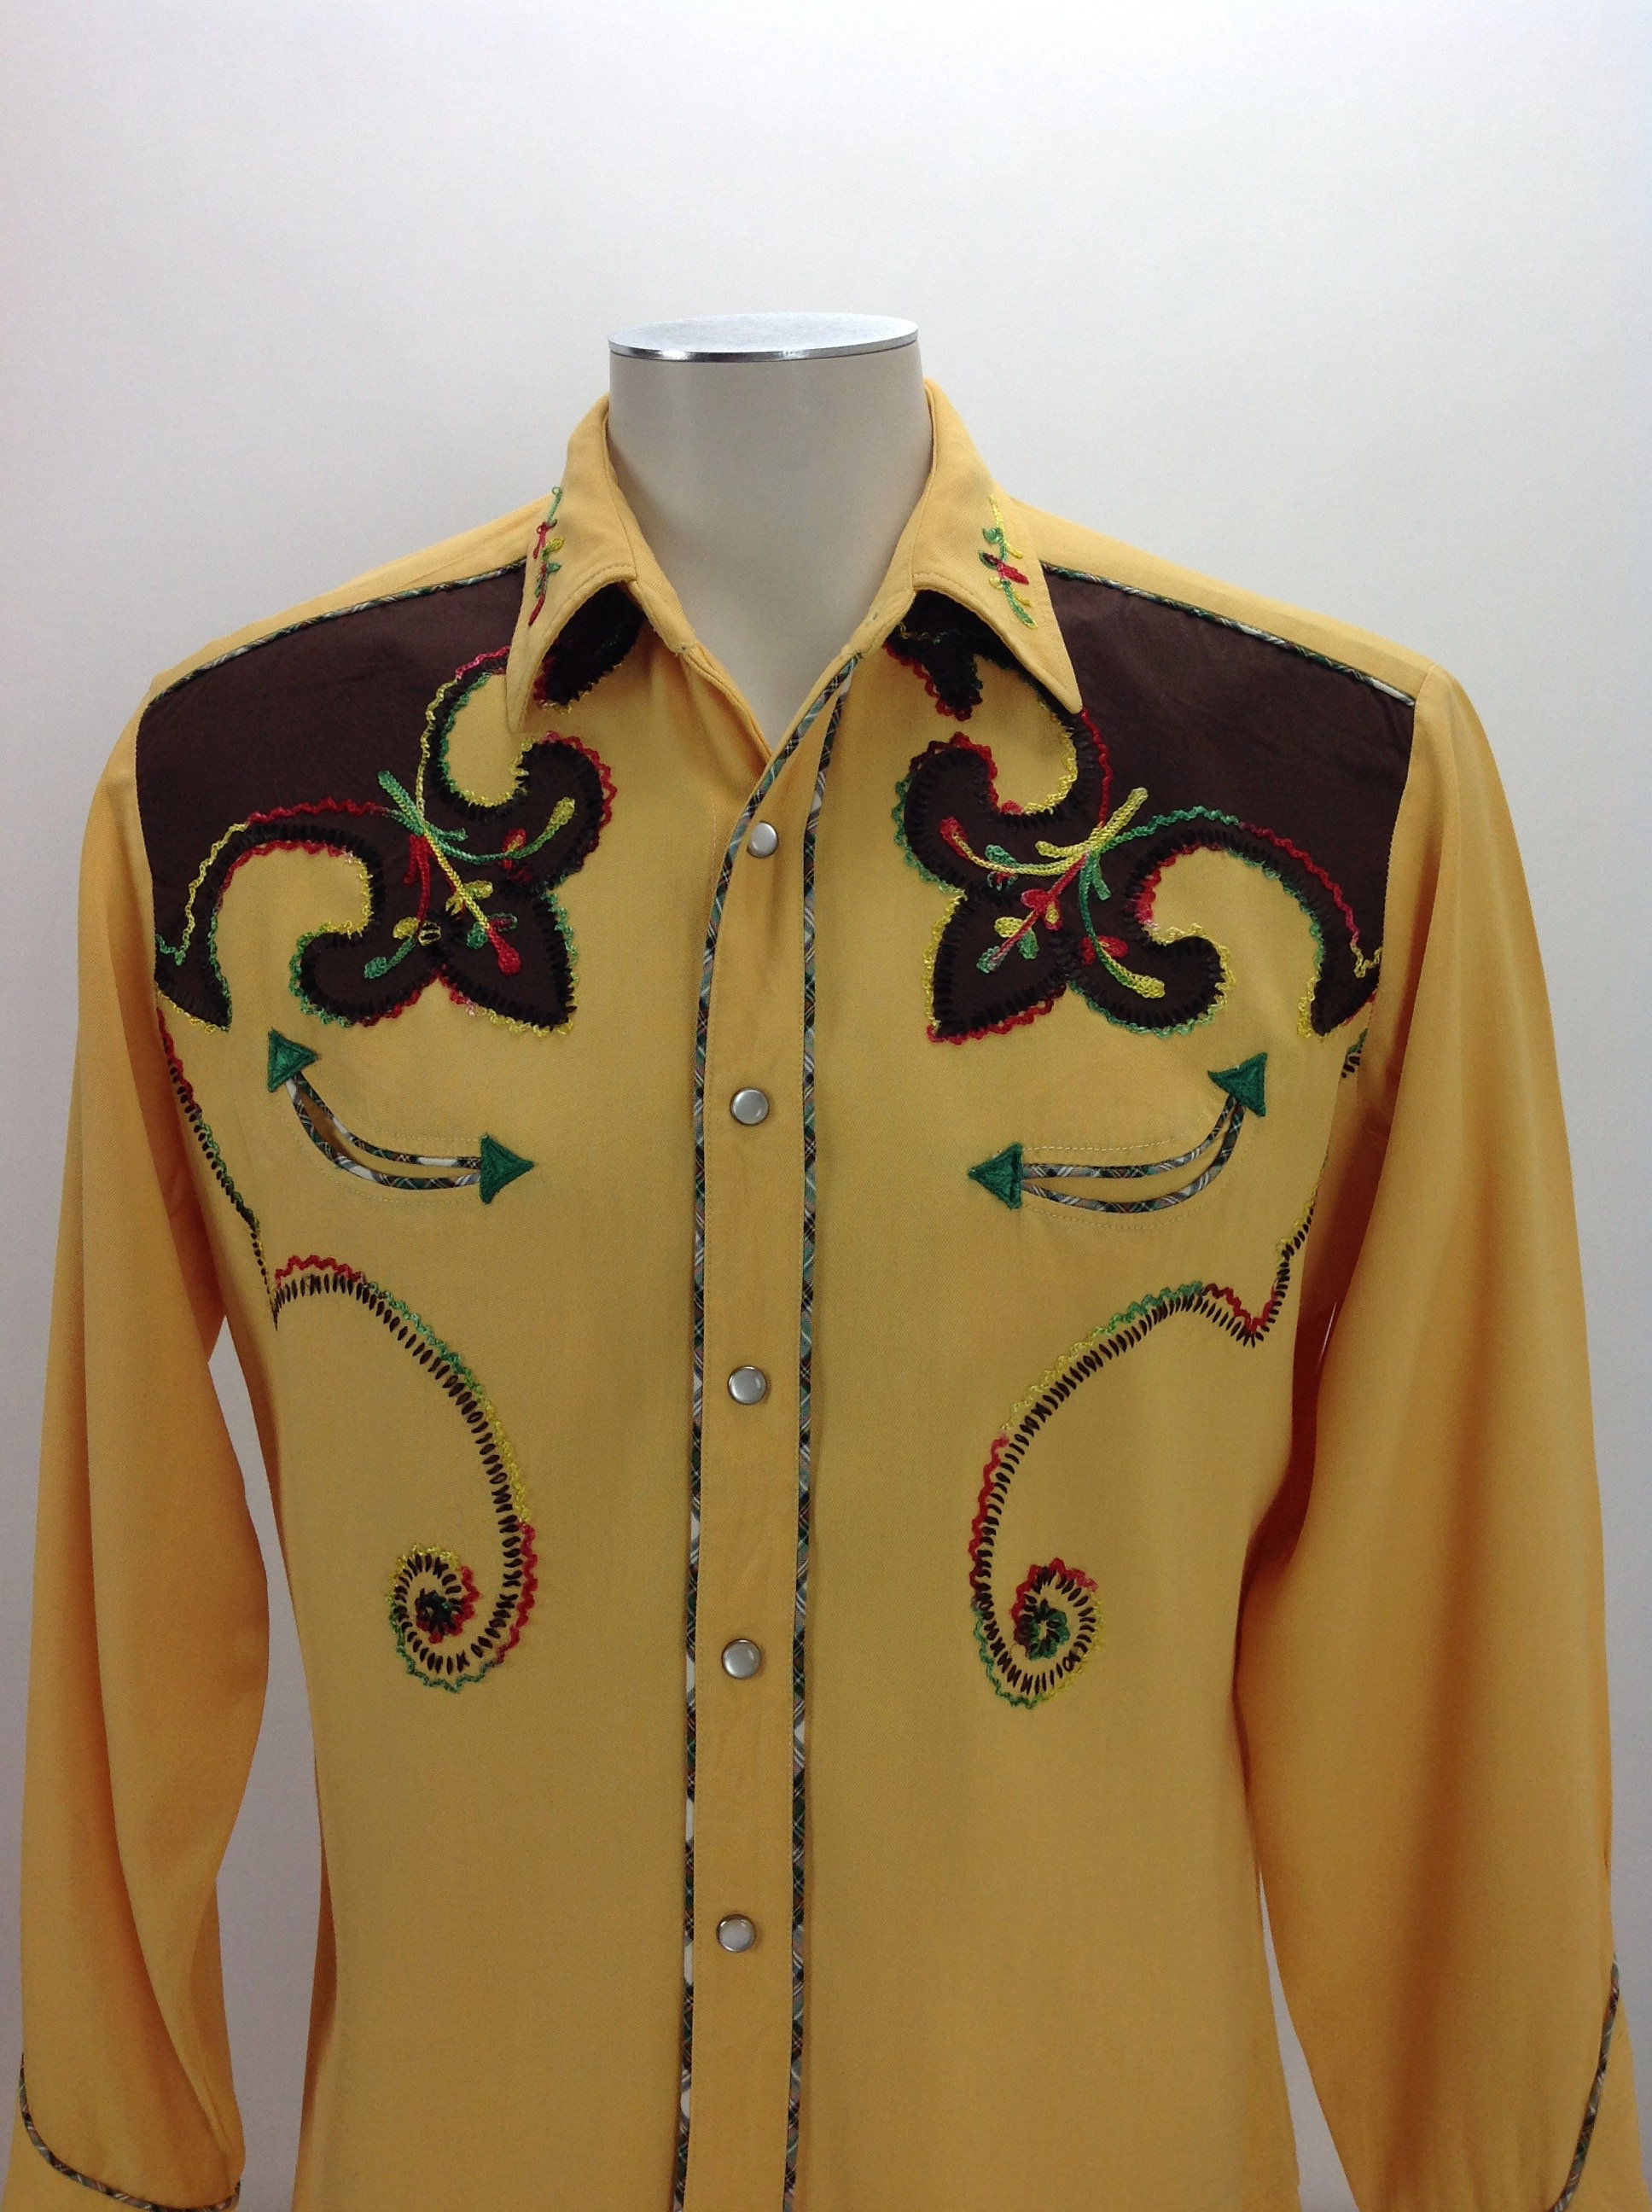 1940s Men's Shirts, Sweaters, Vests 1940s 50s 2Tone Western Gabardine Shirt - Chain Stitch Embroidery Mother Of Pearl Snap Buttons Mens Large $22.95 AT vintagedancer.com